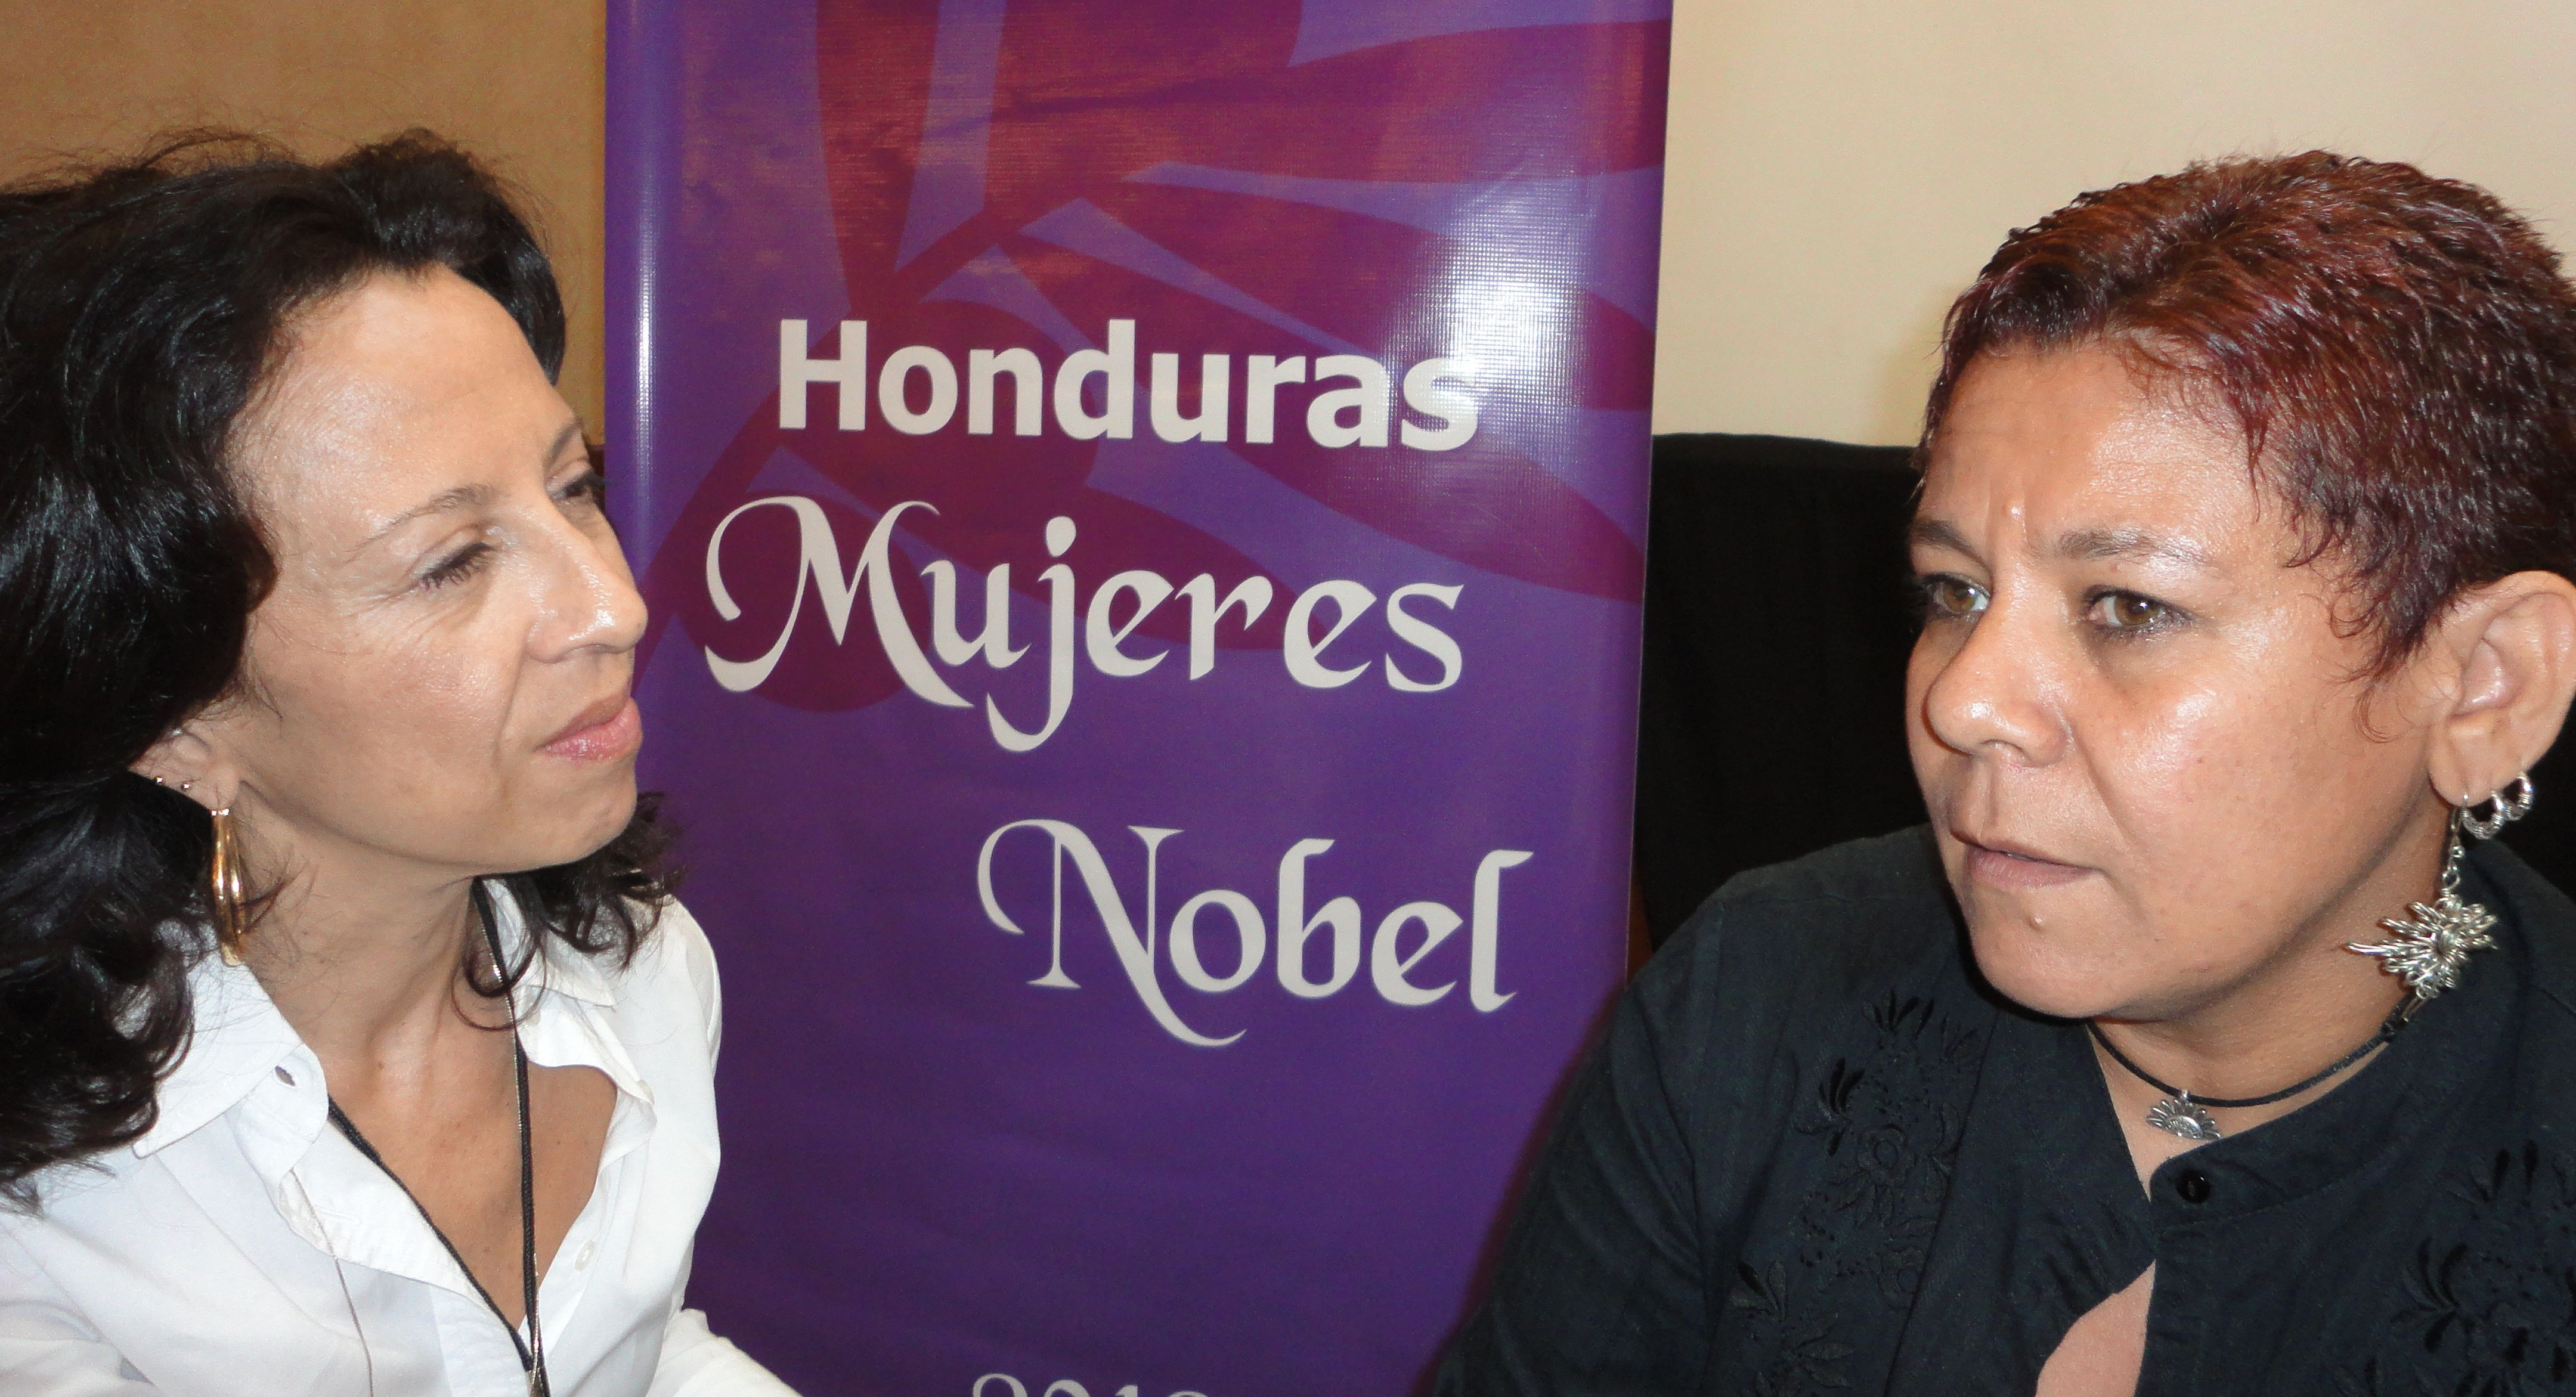 WOMEN AND VIOLENCE: HONDURAS